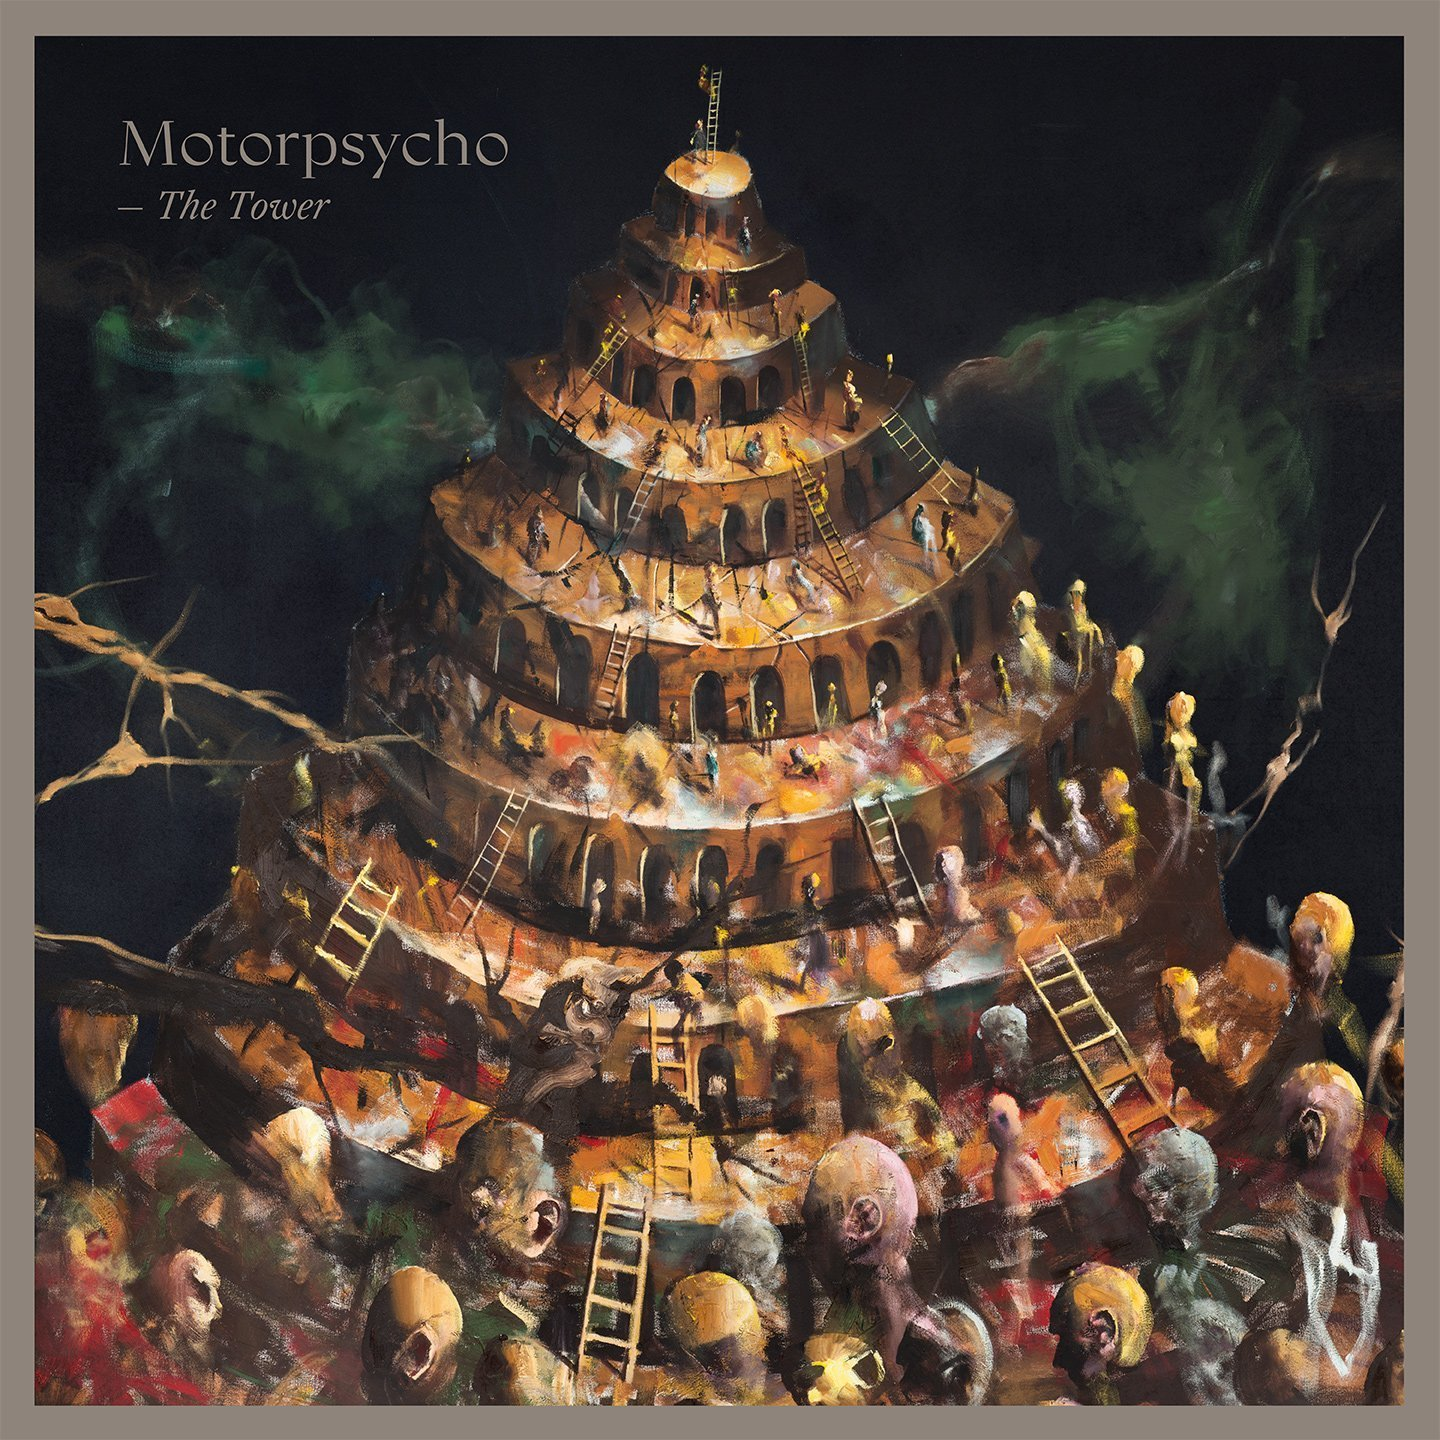 Motorspycho – The Tower